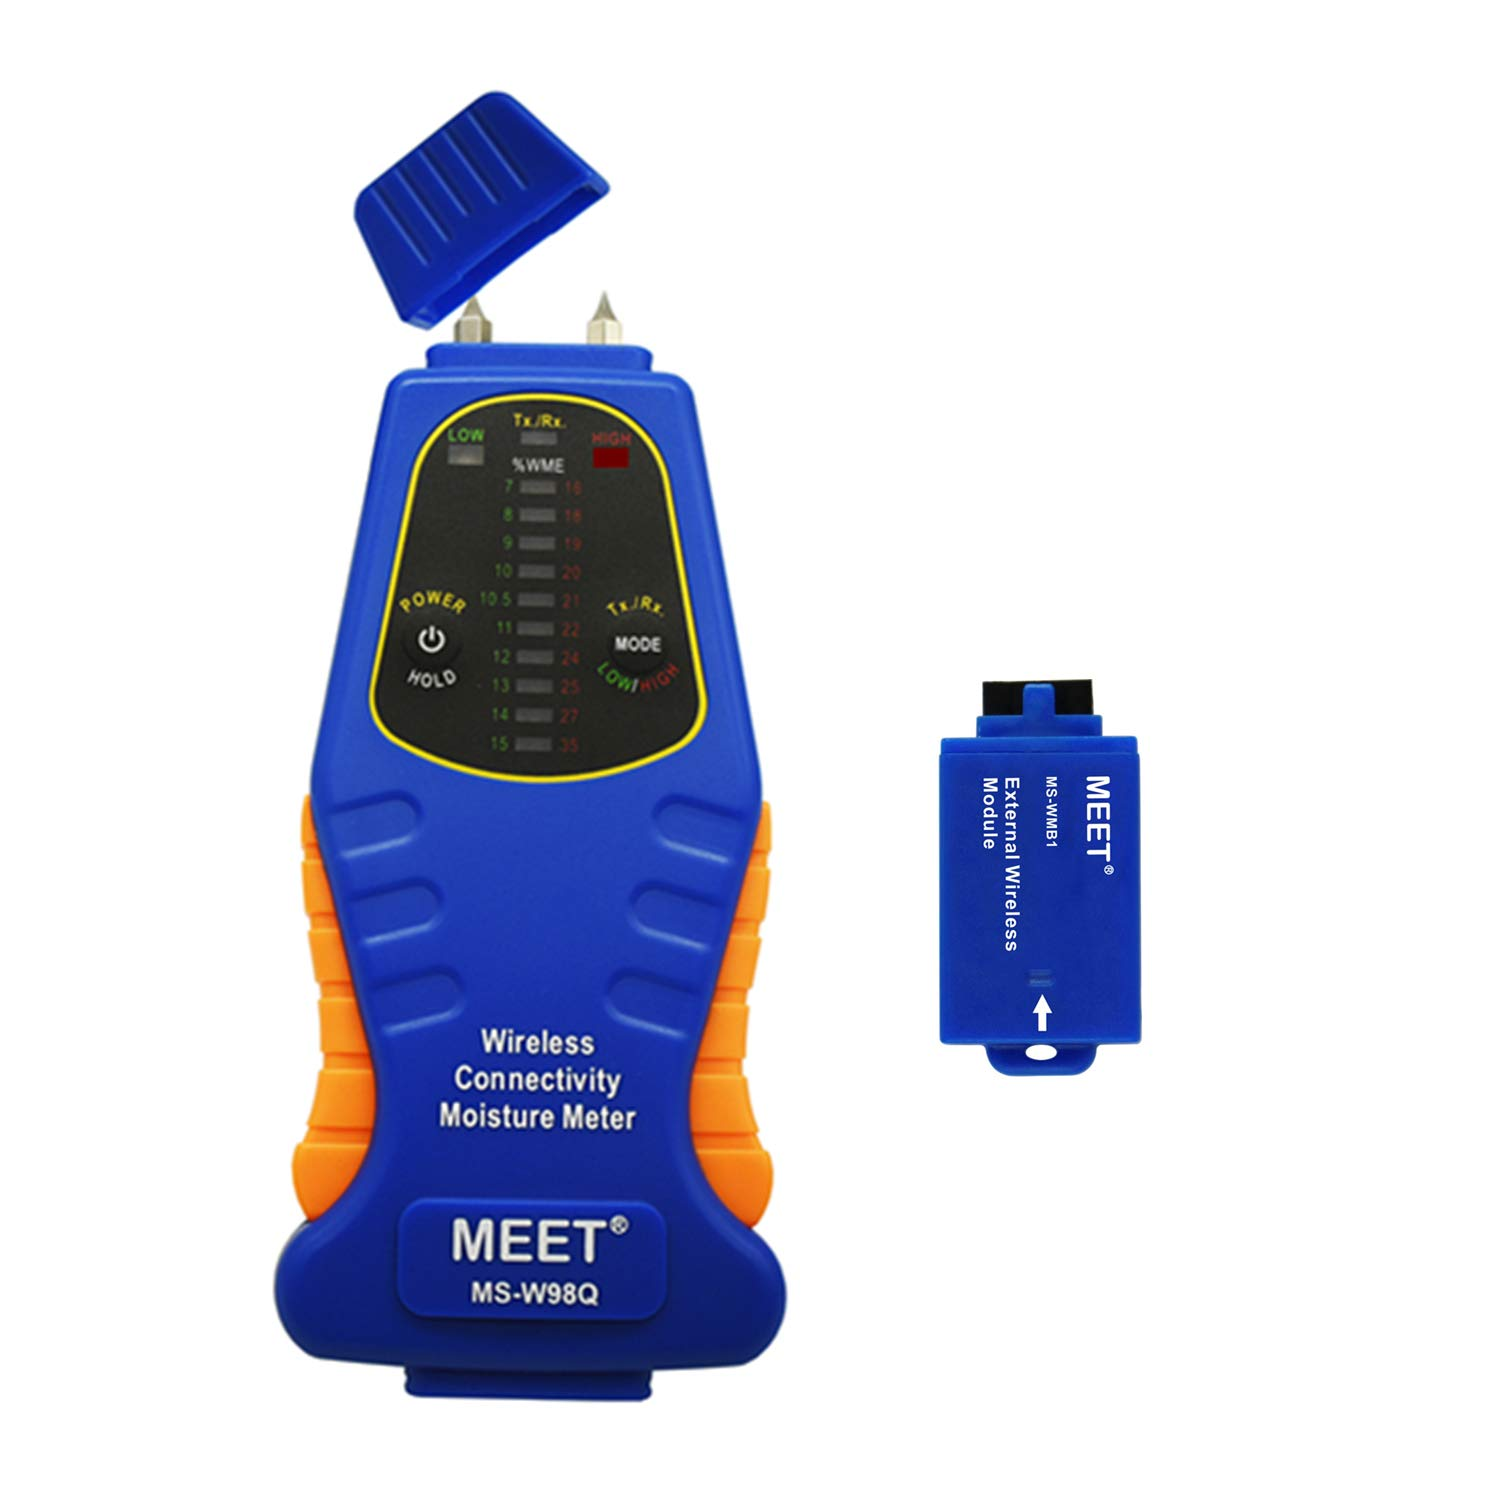 Meet Wireless Connectivity Moisture Meter with Pin Type, Wood, Concrete, Drywall, Carpet Detector, Green/Red Led Bar Graph Display